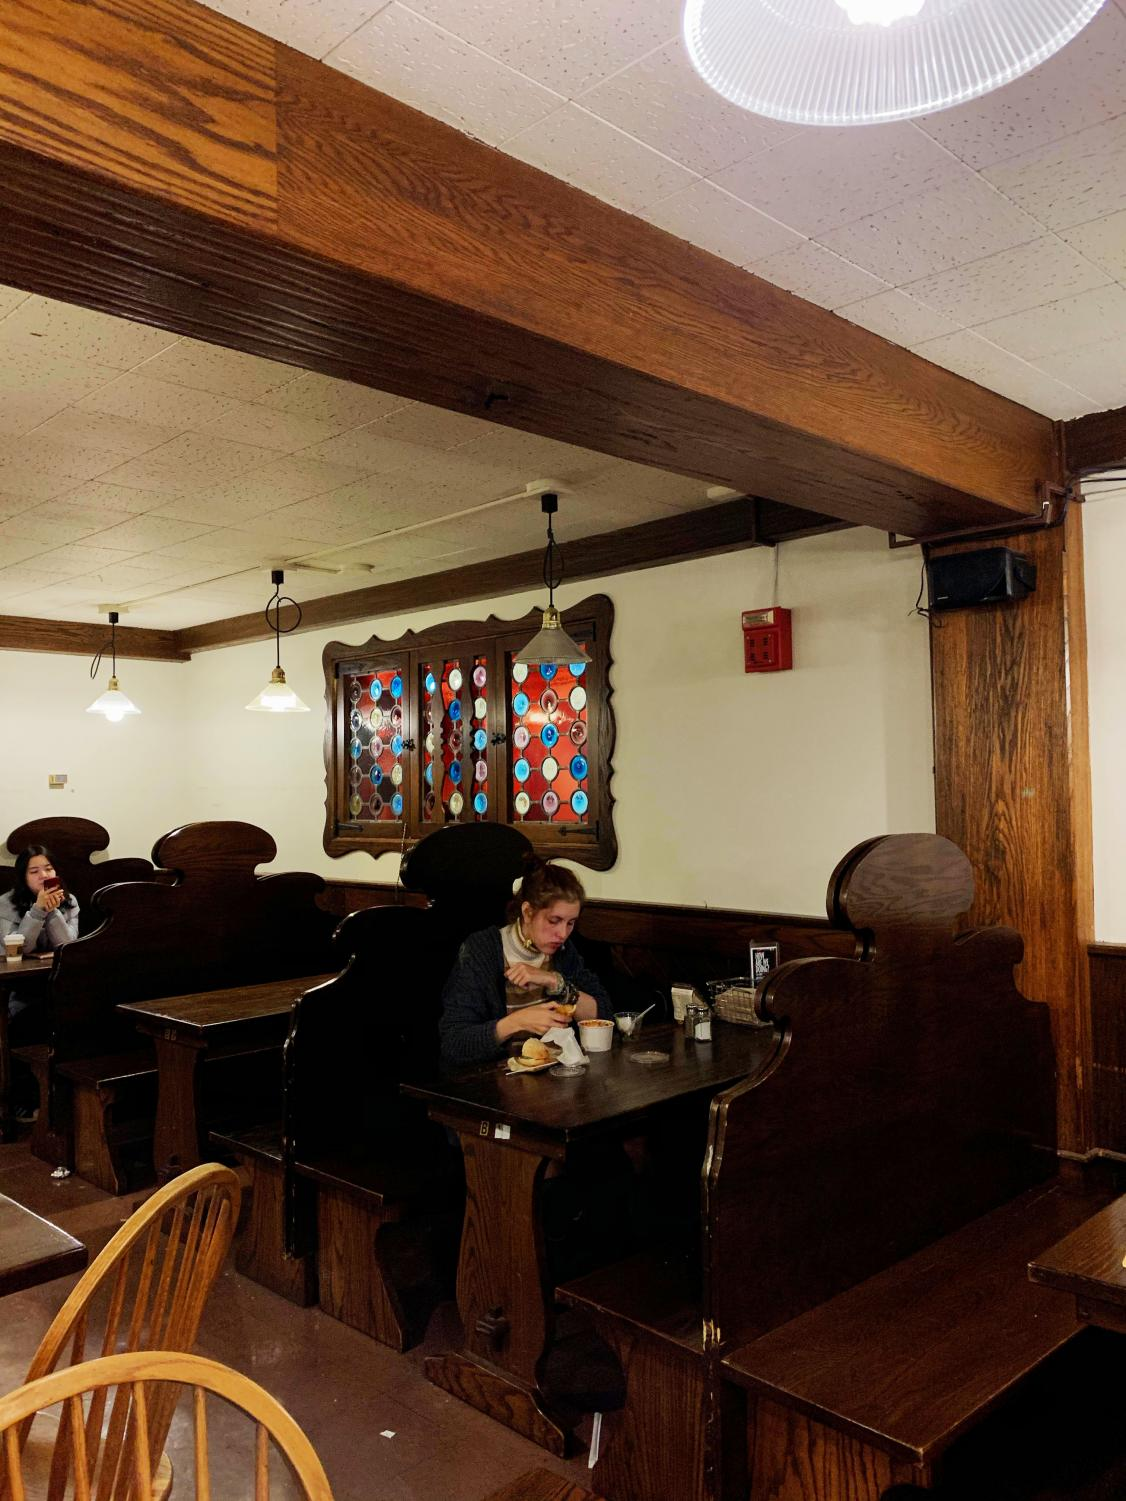 Students eat DeCafe meals in Rathskeller. Previously, Rathskeller was home to Oberlin's Fourth Meal. Now, Fourth Meal is only available as premade to-go food purchased at DeCafe.